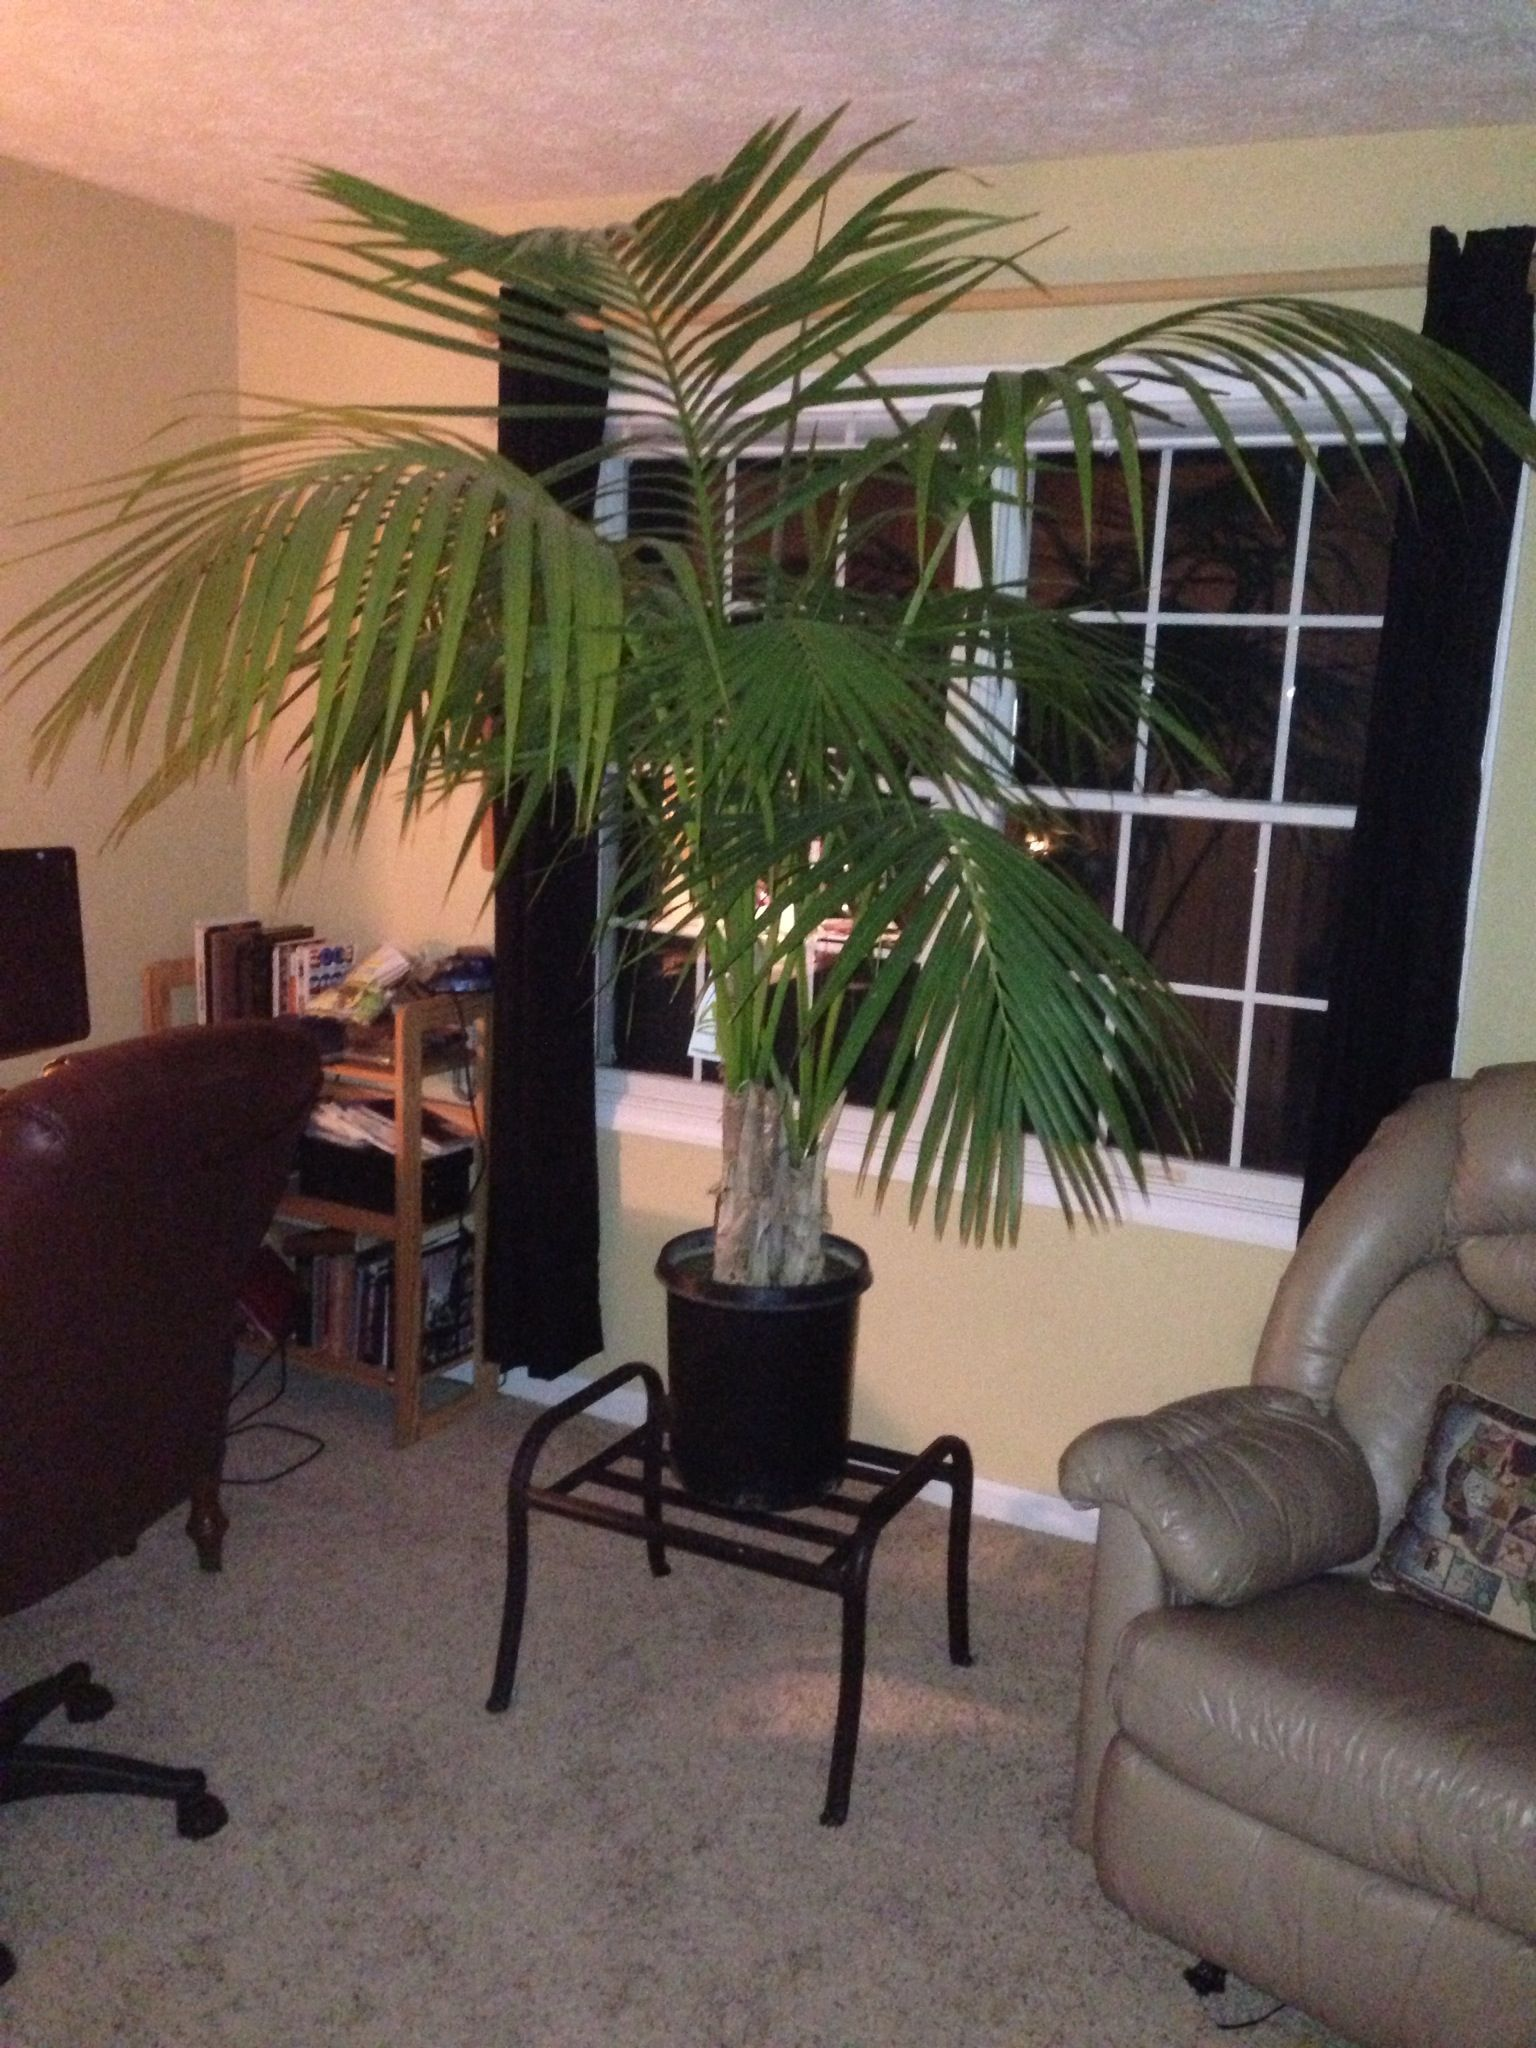 My Favorite Palm, A Graceful And Rather Large Kentia Palm